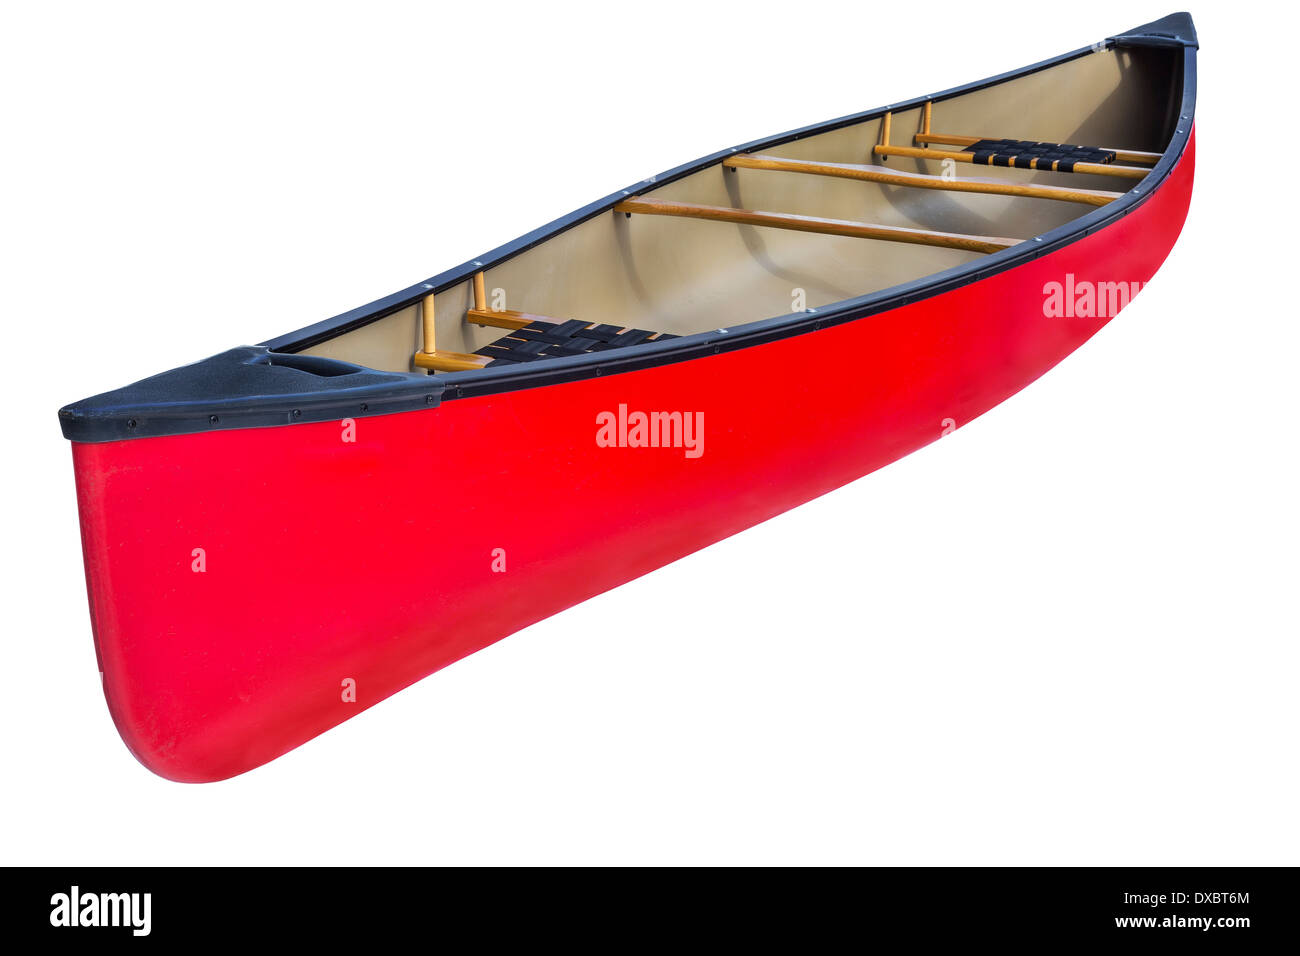 red tandem canoe with wooden seats and yoke, isolated on white with a clipping path - Stock Image